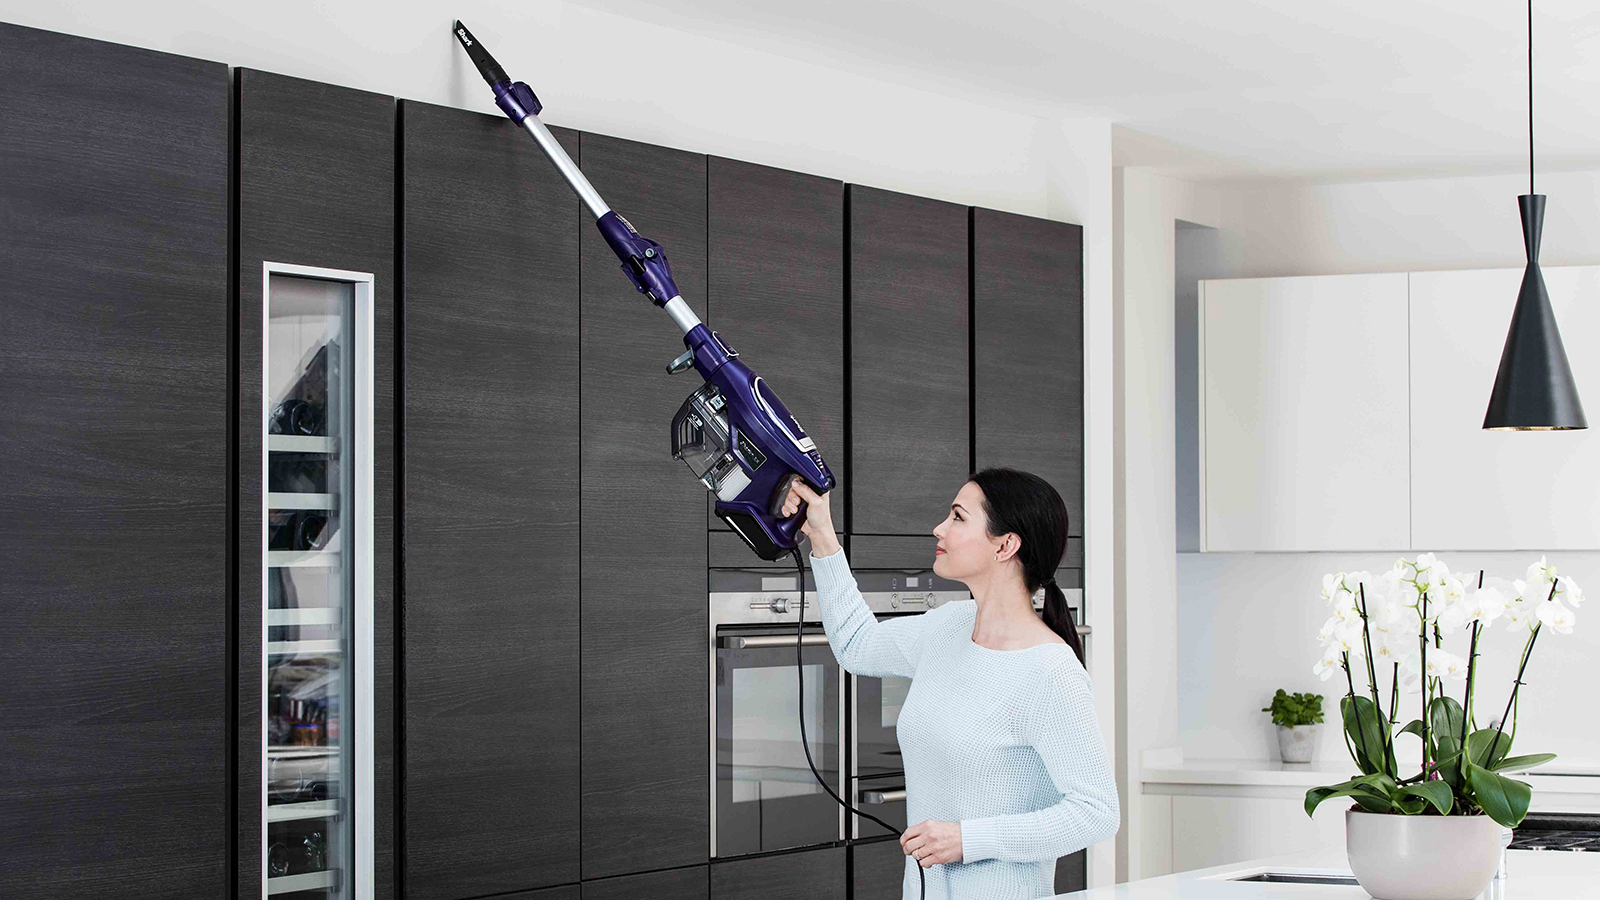 High Up Cleaning with the Shark DuoClean Corded Stick Vacuum Cleaner